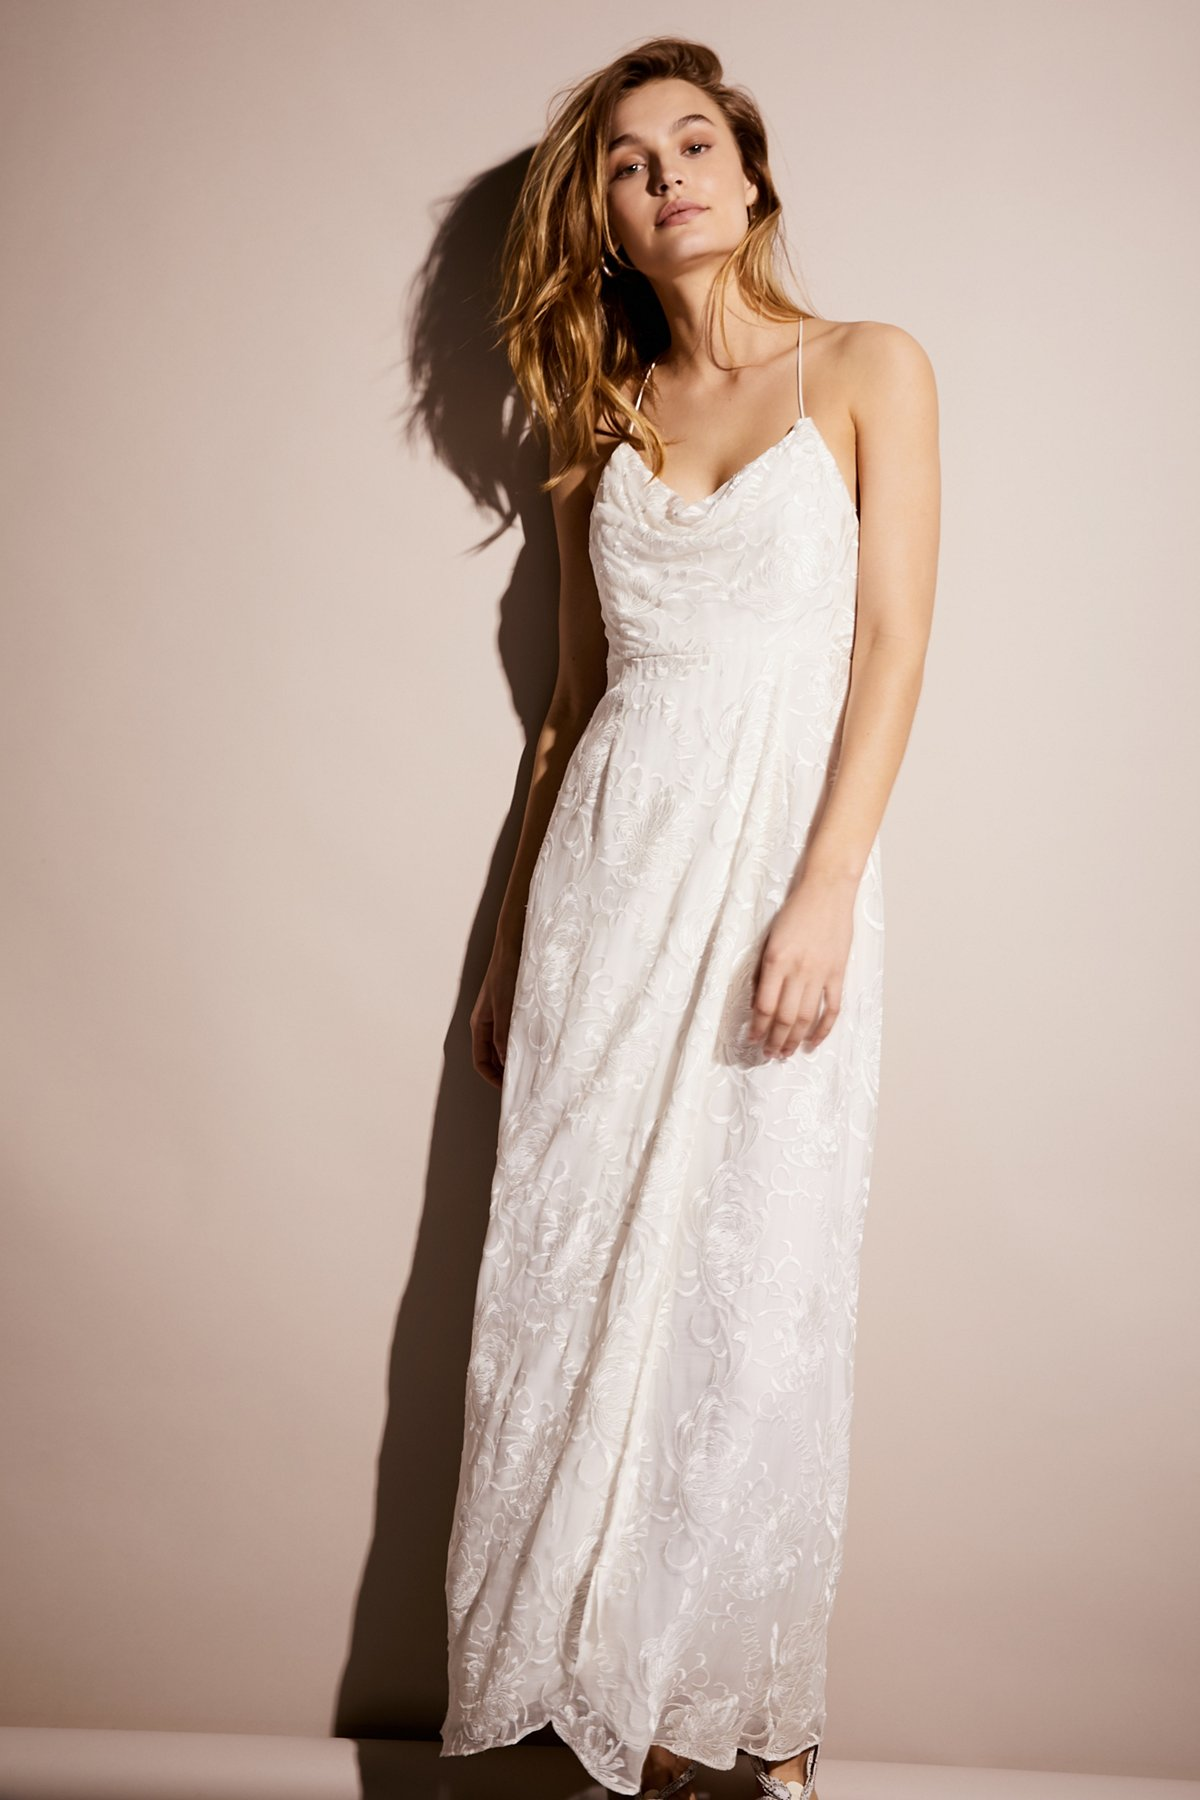 Jill's Limited Edition White Dress